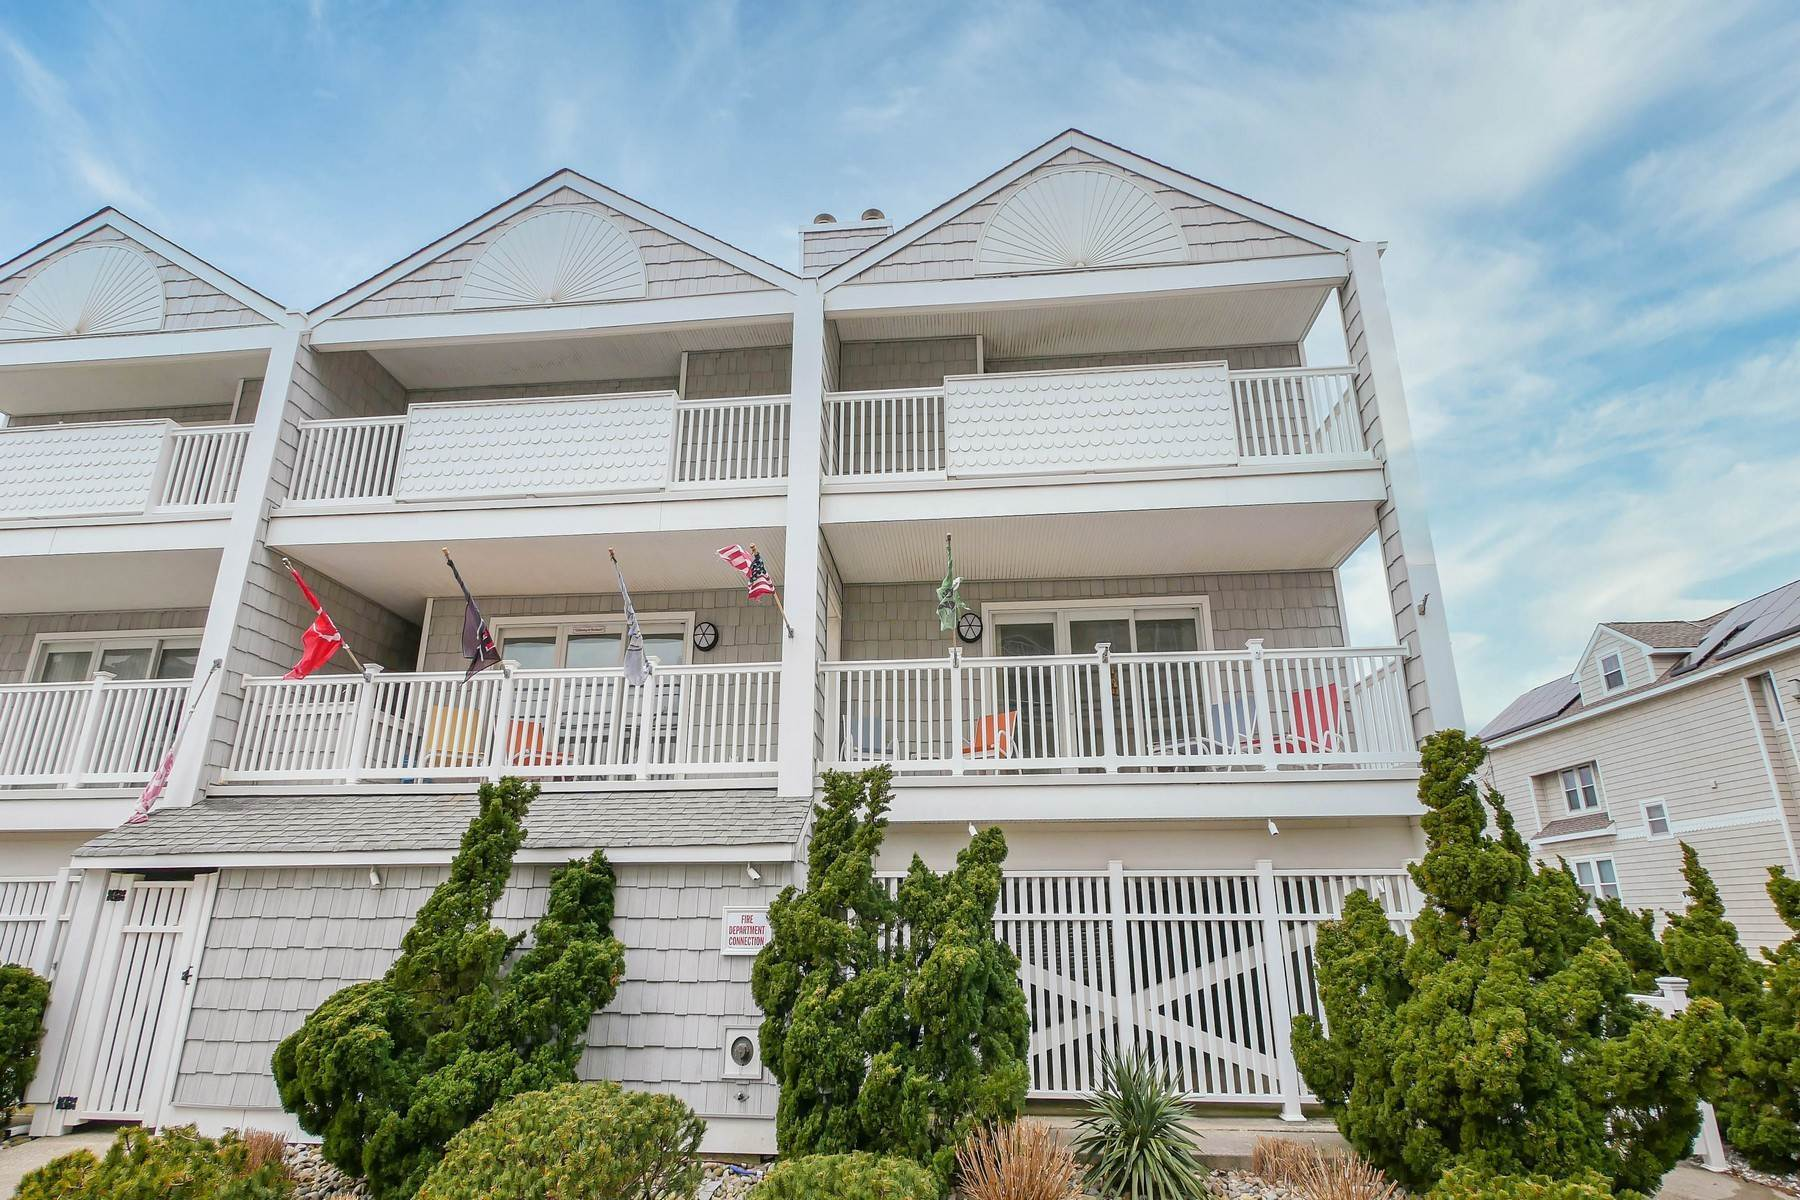 townhouses for Sale at 9415 Atlantic Ave #3 9415 Atlantic Ave, #3, Margate, New Jersey 08402 United States